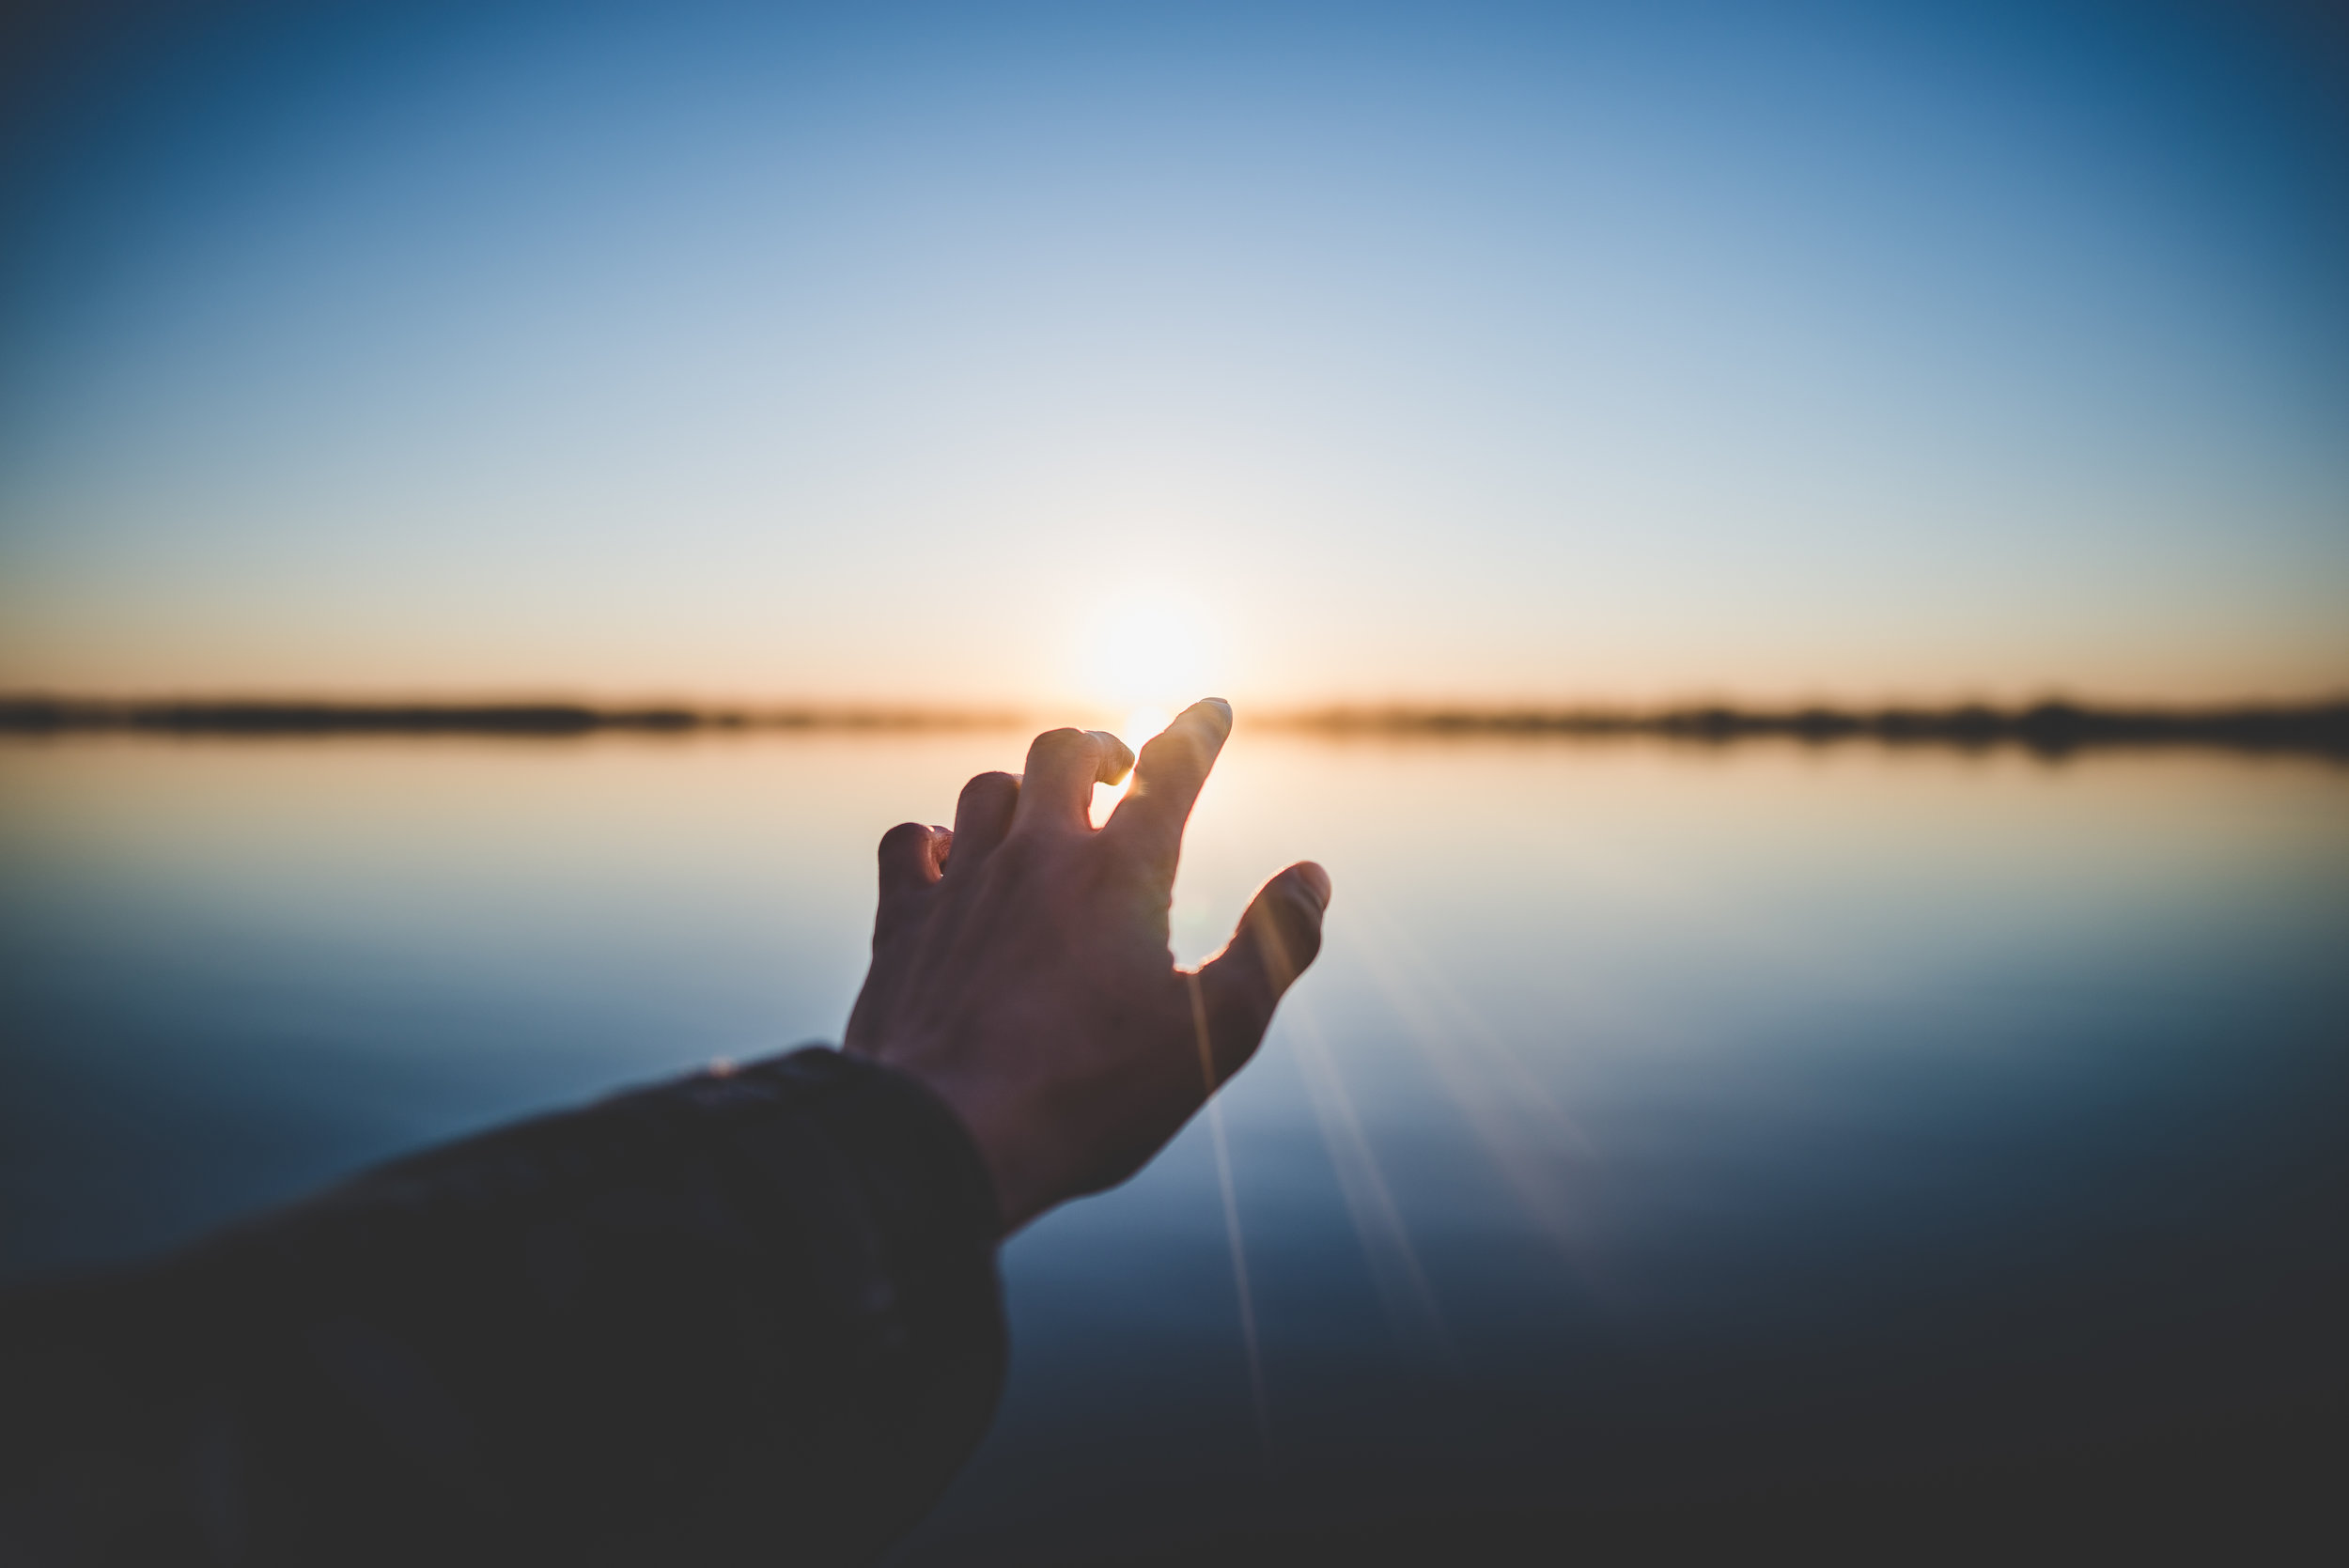 And when our motivations aren't quite right, we need to connect again with God's mercy. -